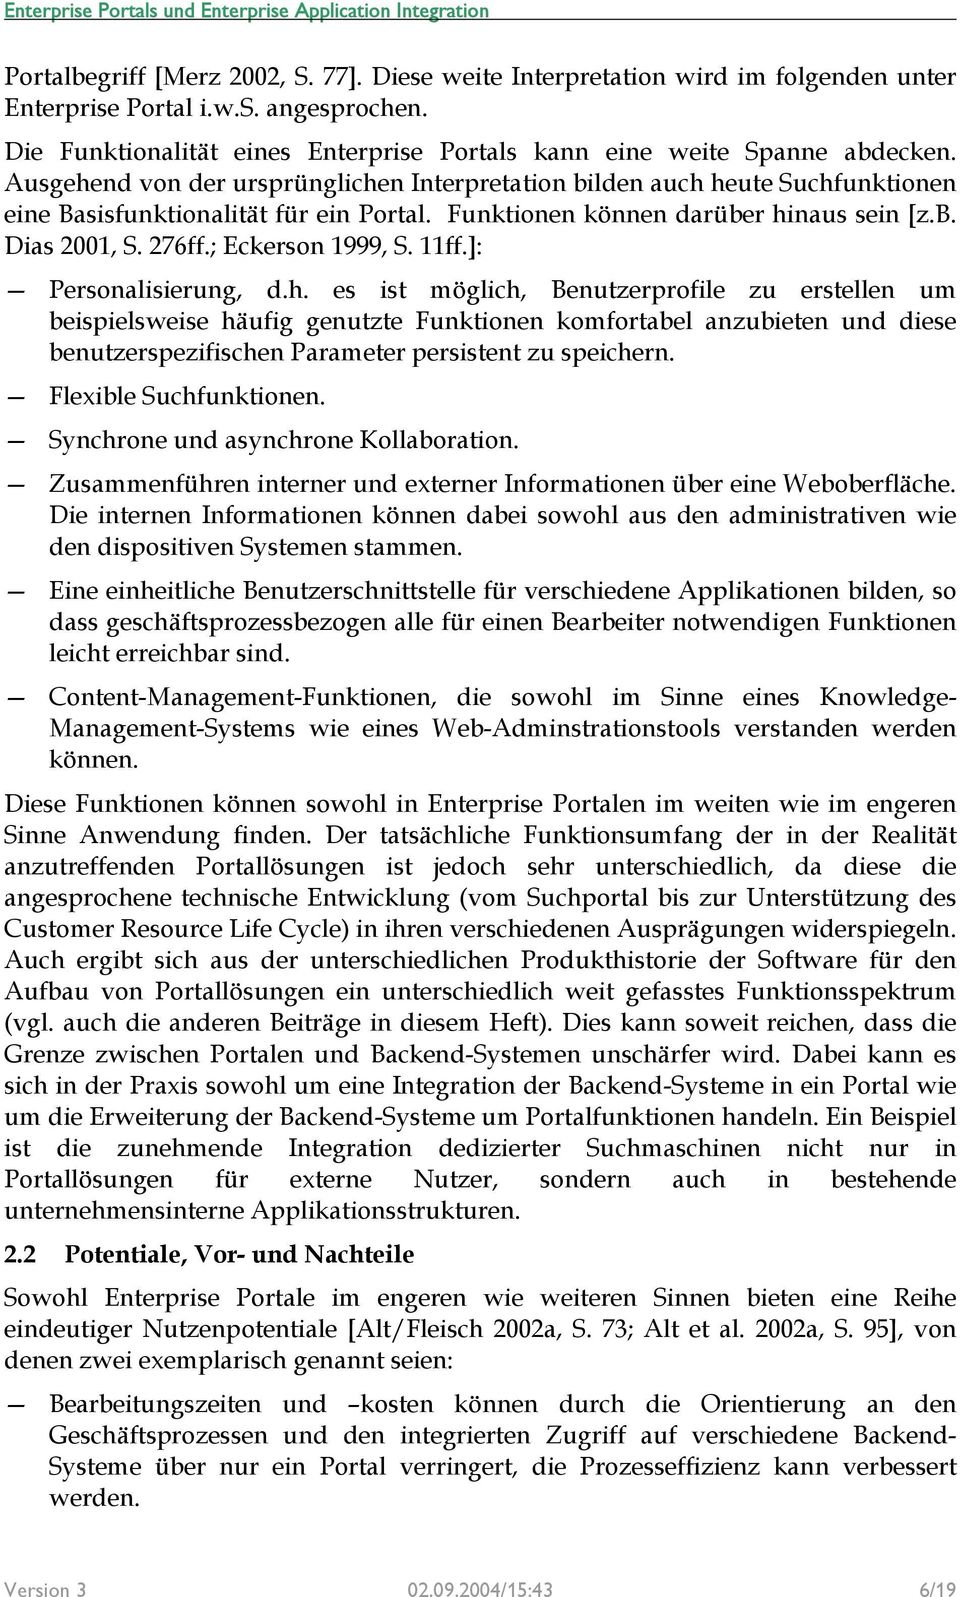 ; Eckerson 1999, S. 11ff.]: Personalisierung, d.h.